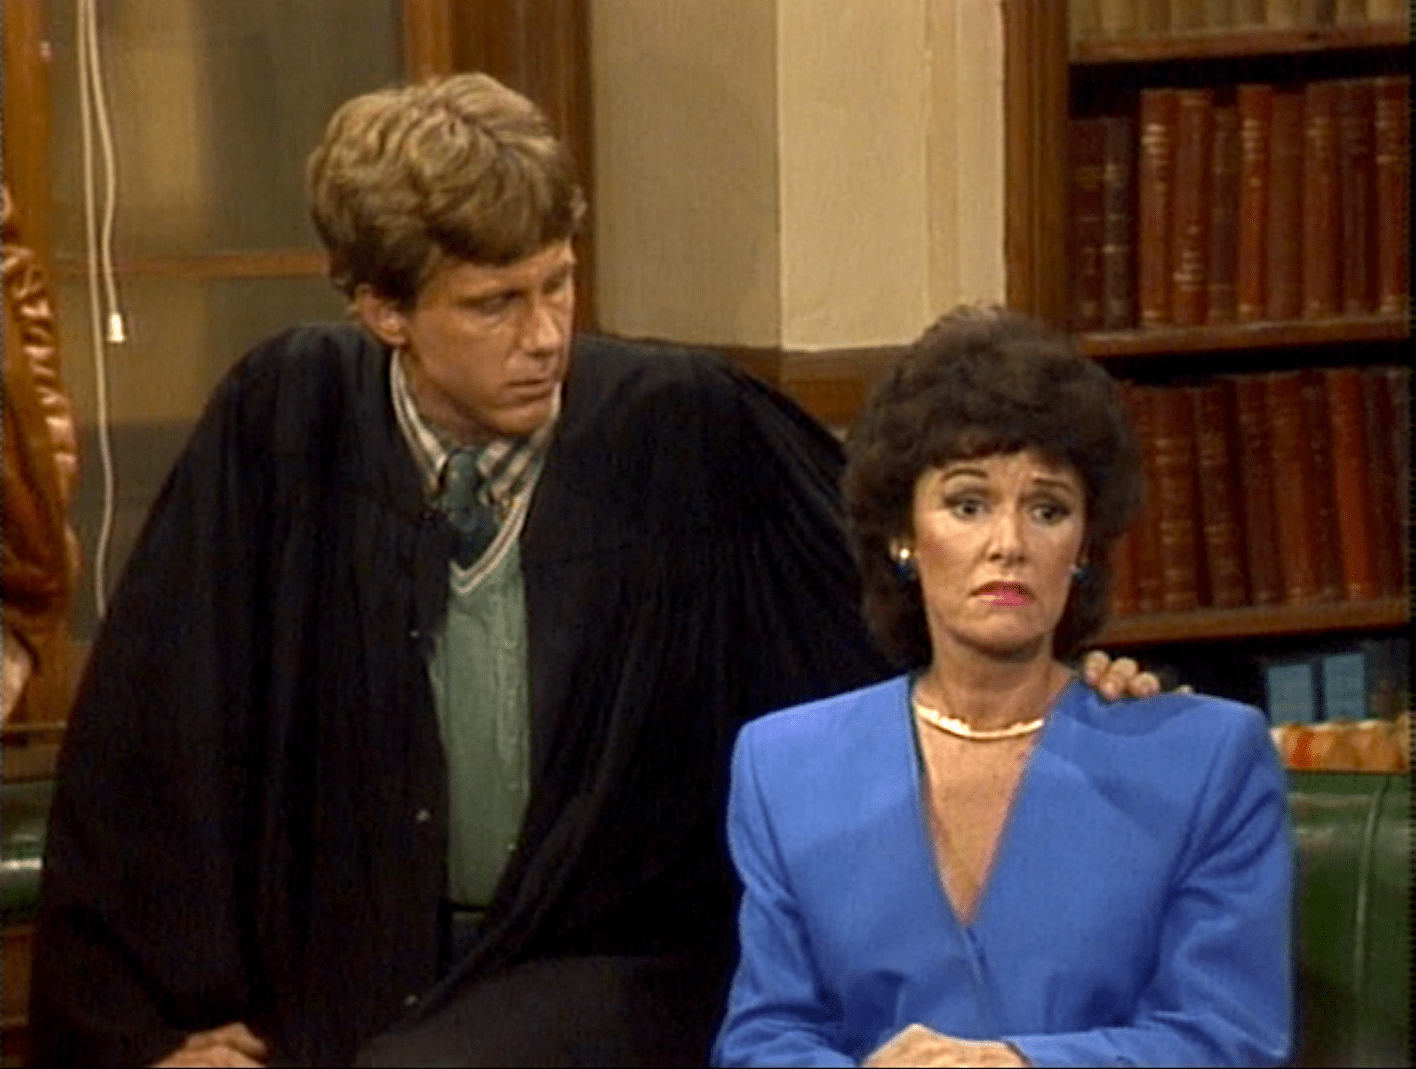 screen shot 2016 02 28 at 1 49 17 pm e1607522983649 20 Things You Probably Didn't Know About Night Court